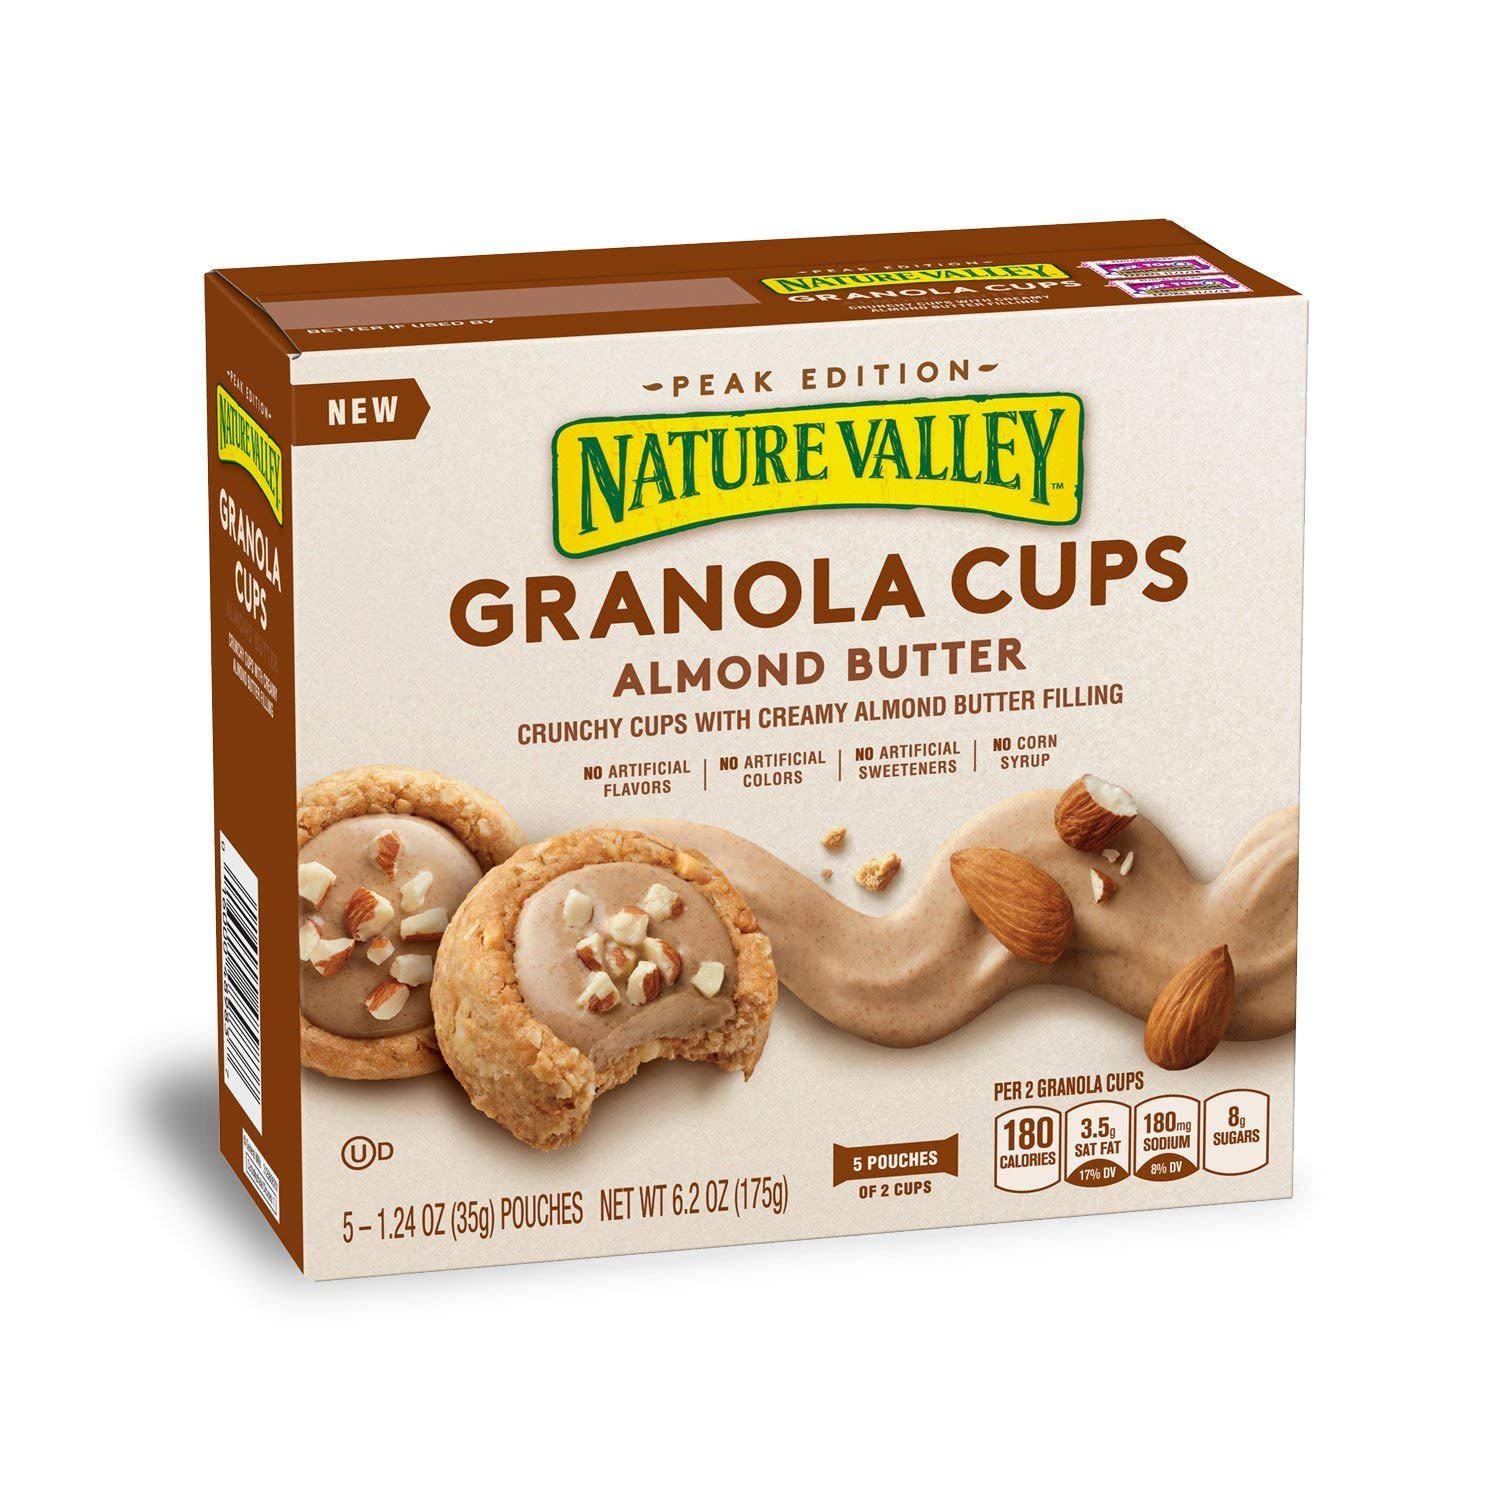 Nature Valley Peak Edition Granola Cups, Almond Butter, 1.24 Ounce, 5 Bars (5 Boxes)